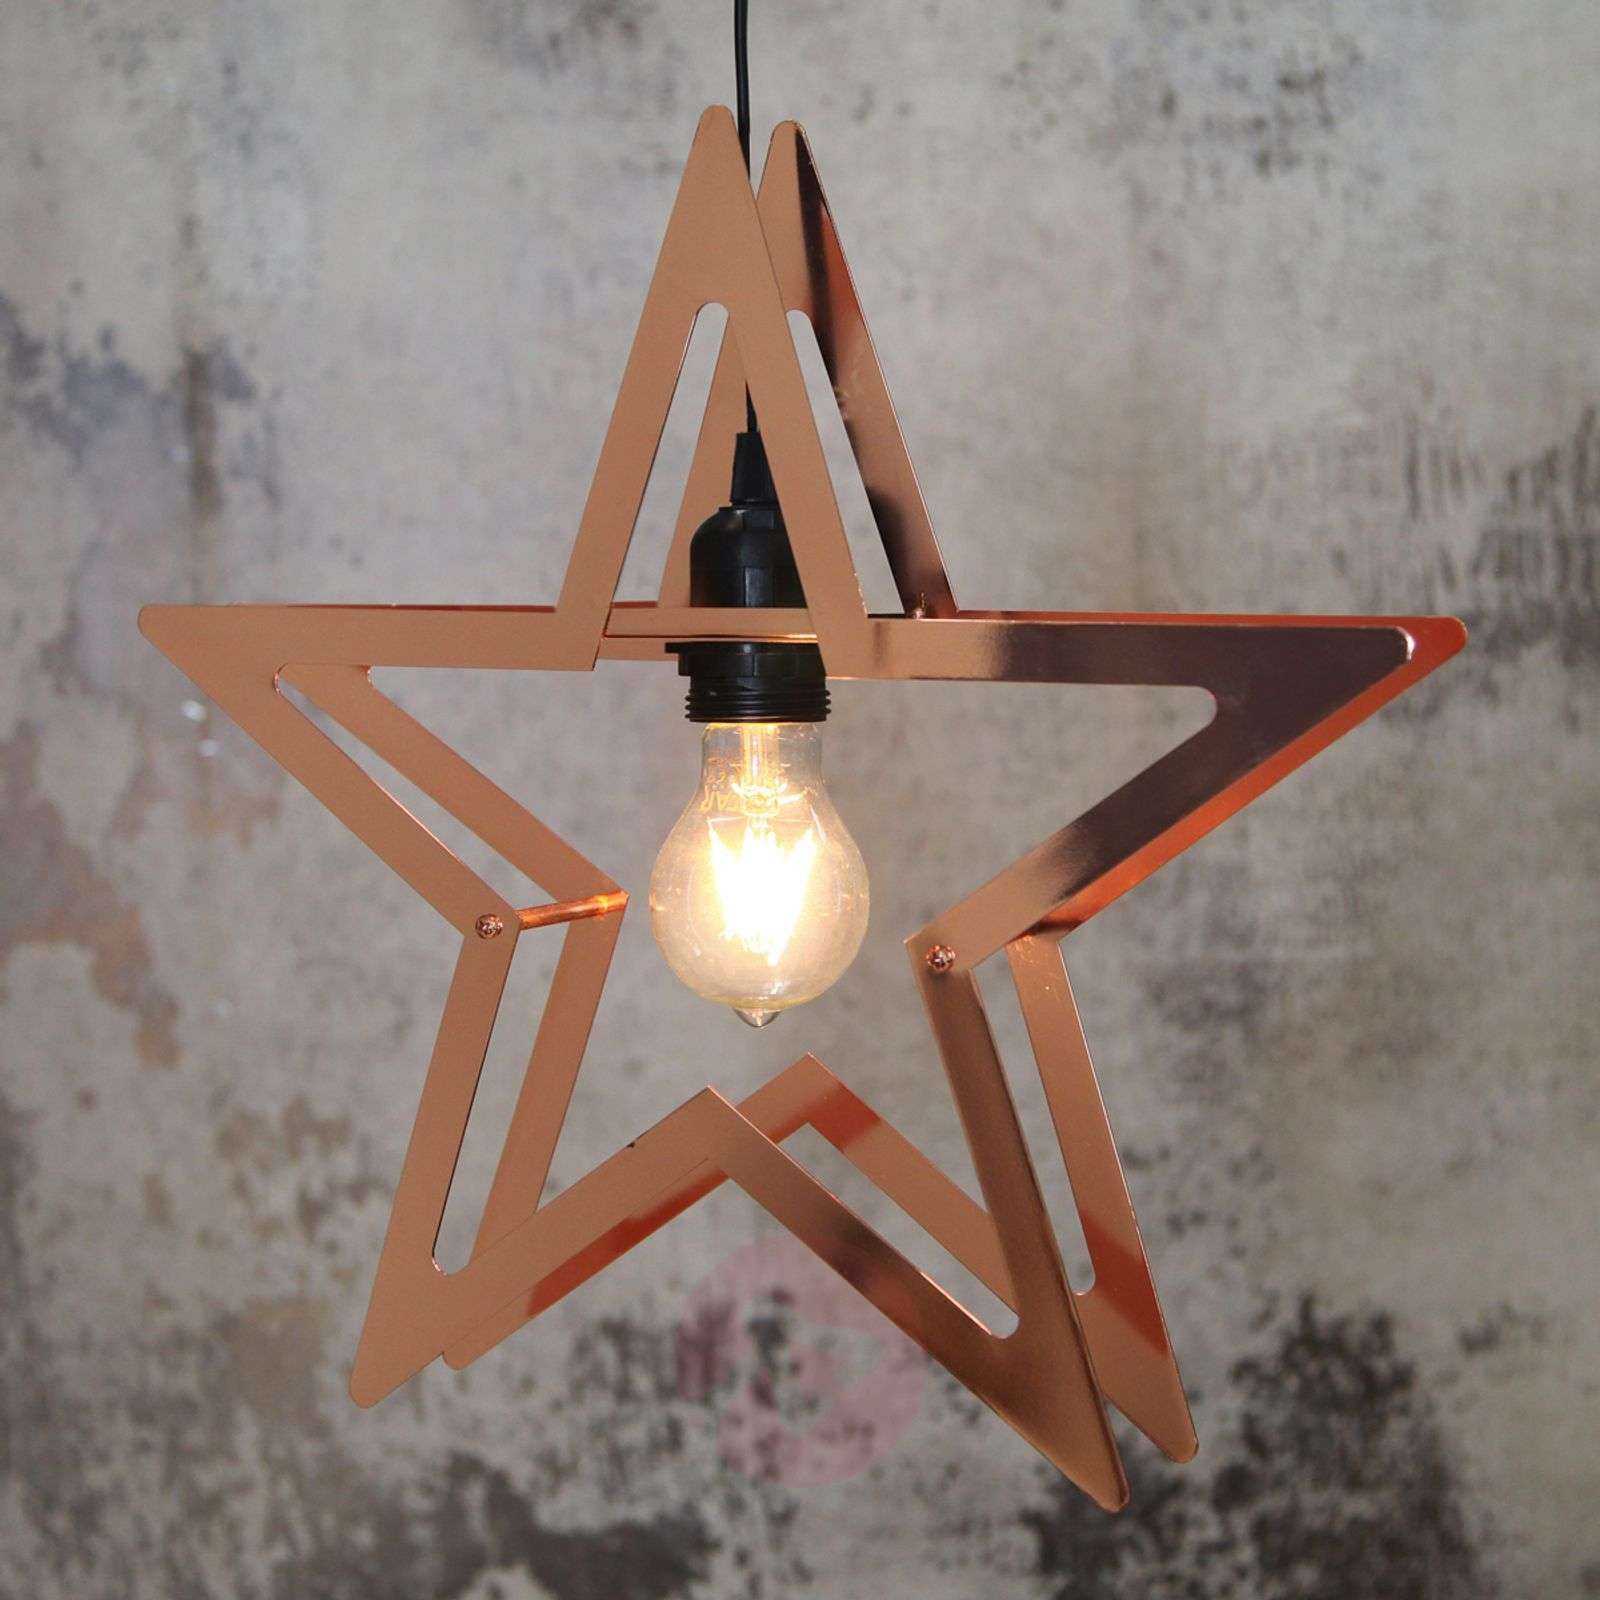 on boy bedroom lovely lights picture of decor fairy to hang way for best decorative patio string